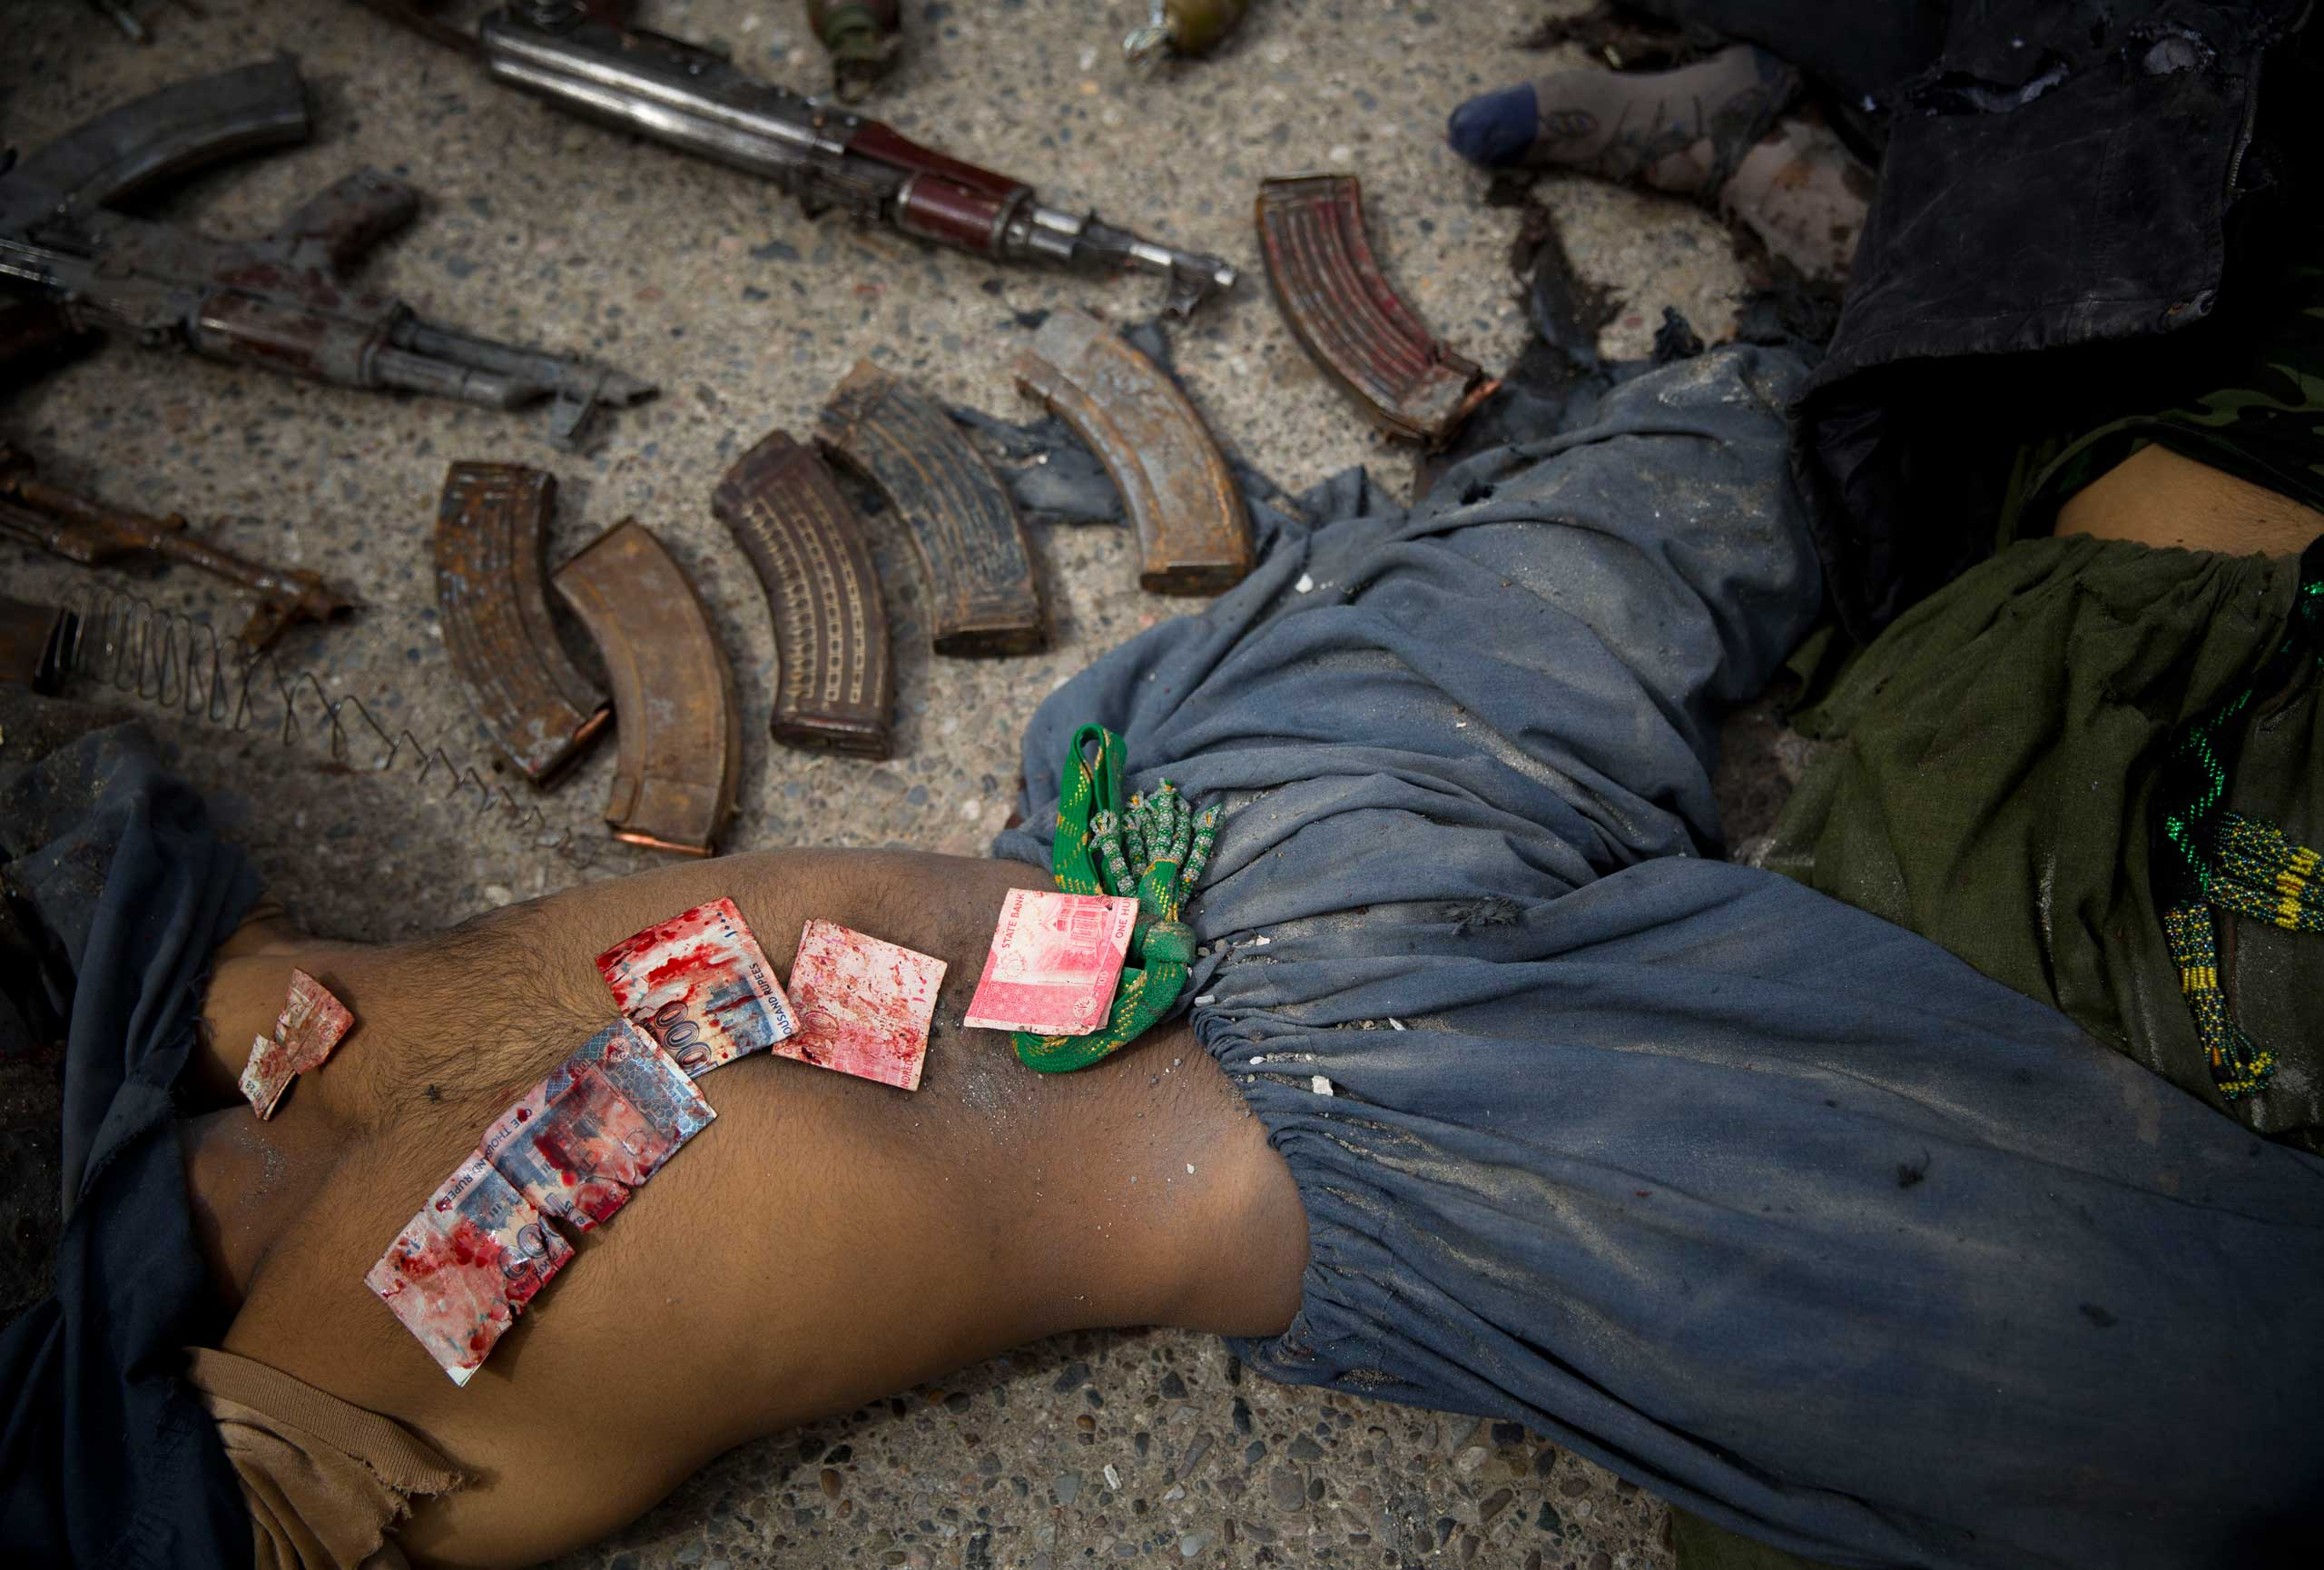 Pakistani bank notes covered in blood are displayed on the body of a dead suicide bomber after police found them in his pocket in the center of Kandahar, Afghanistan, March 12, 2014, after an attack on the former Afghan intelligence headquarters.